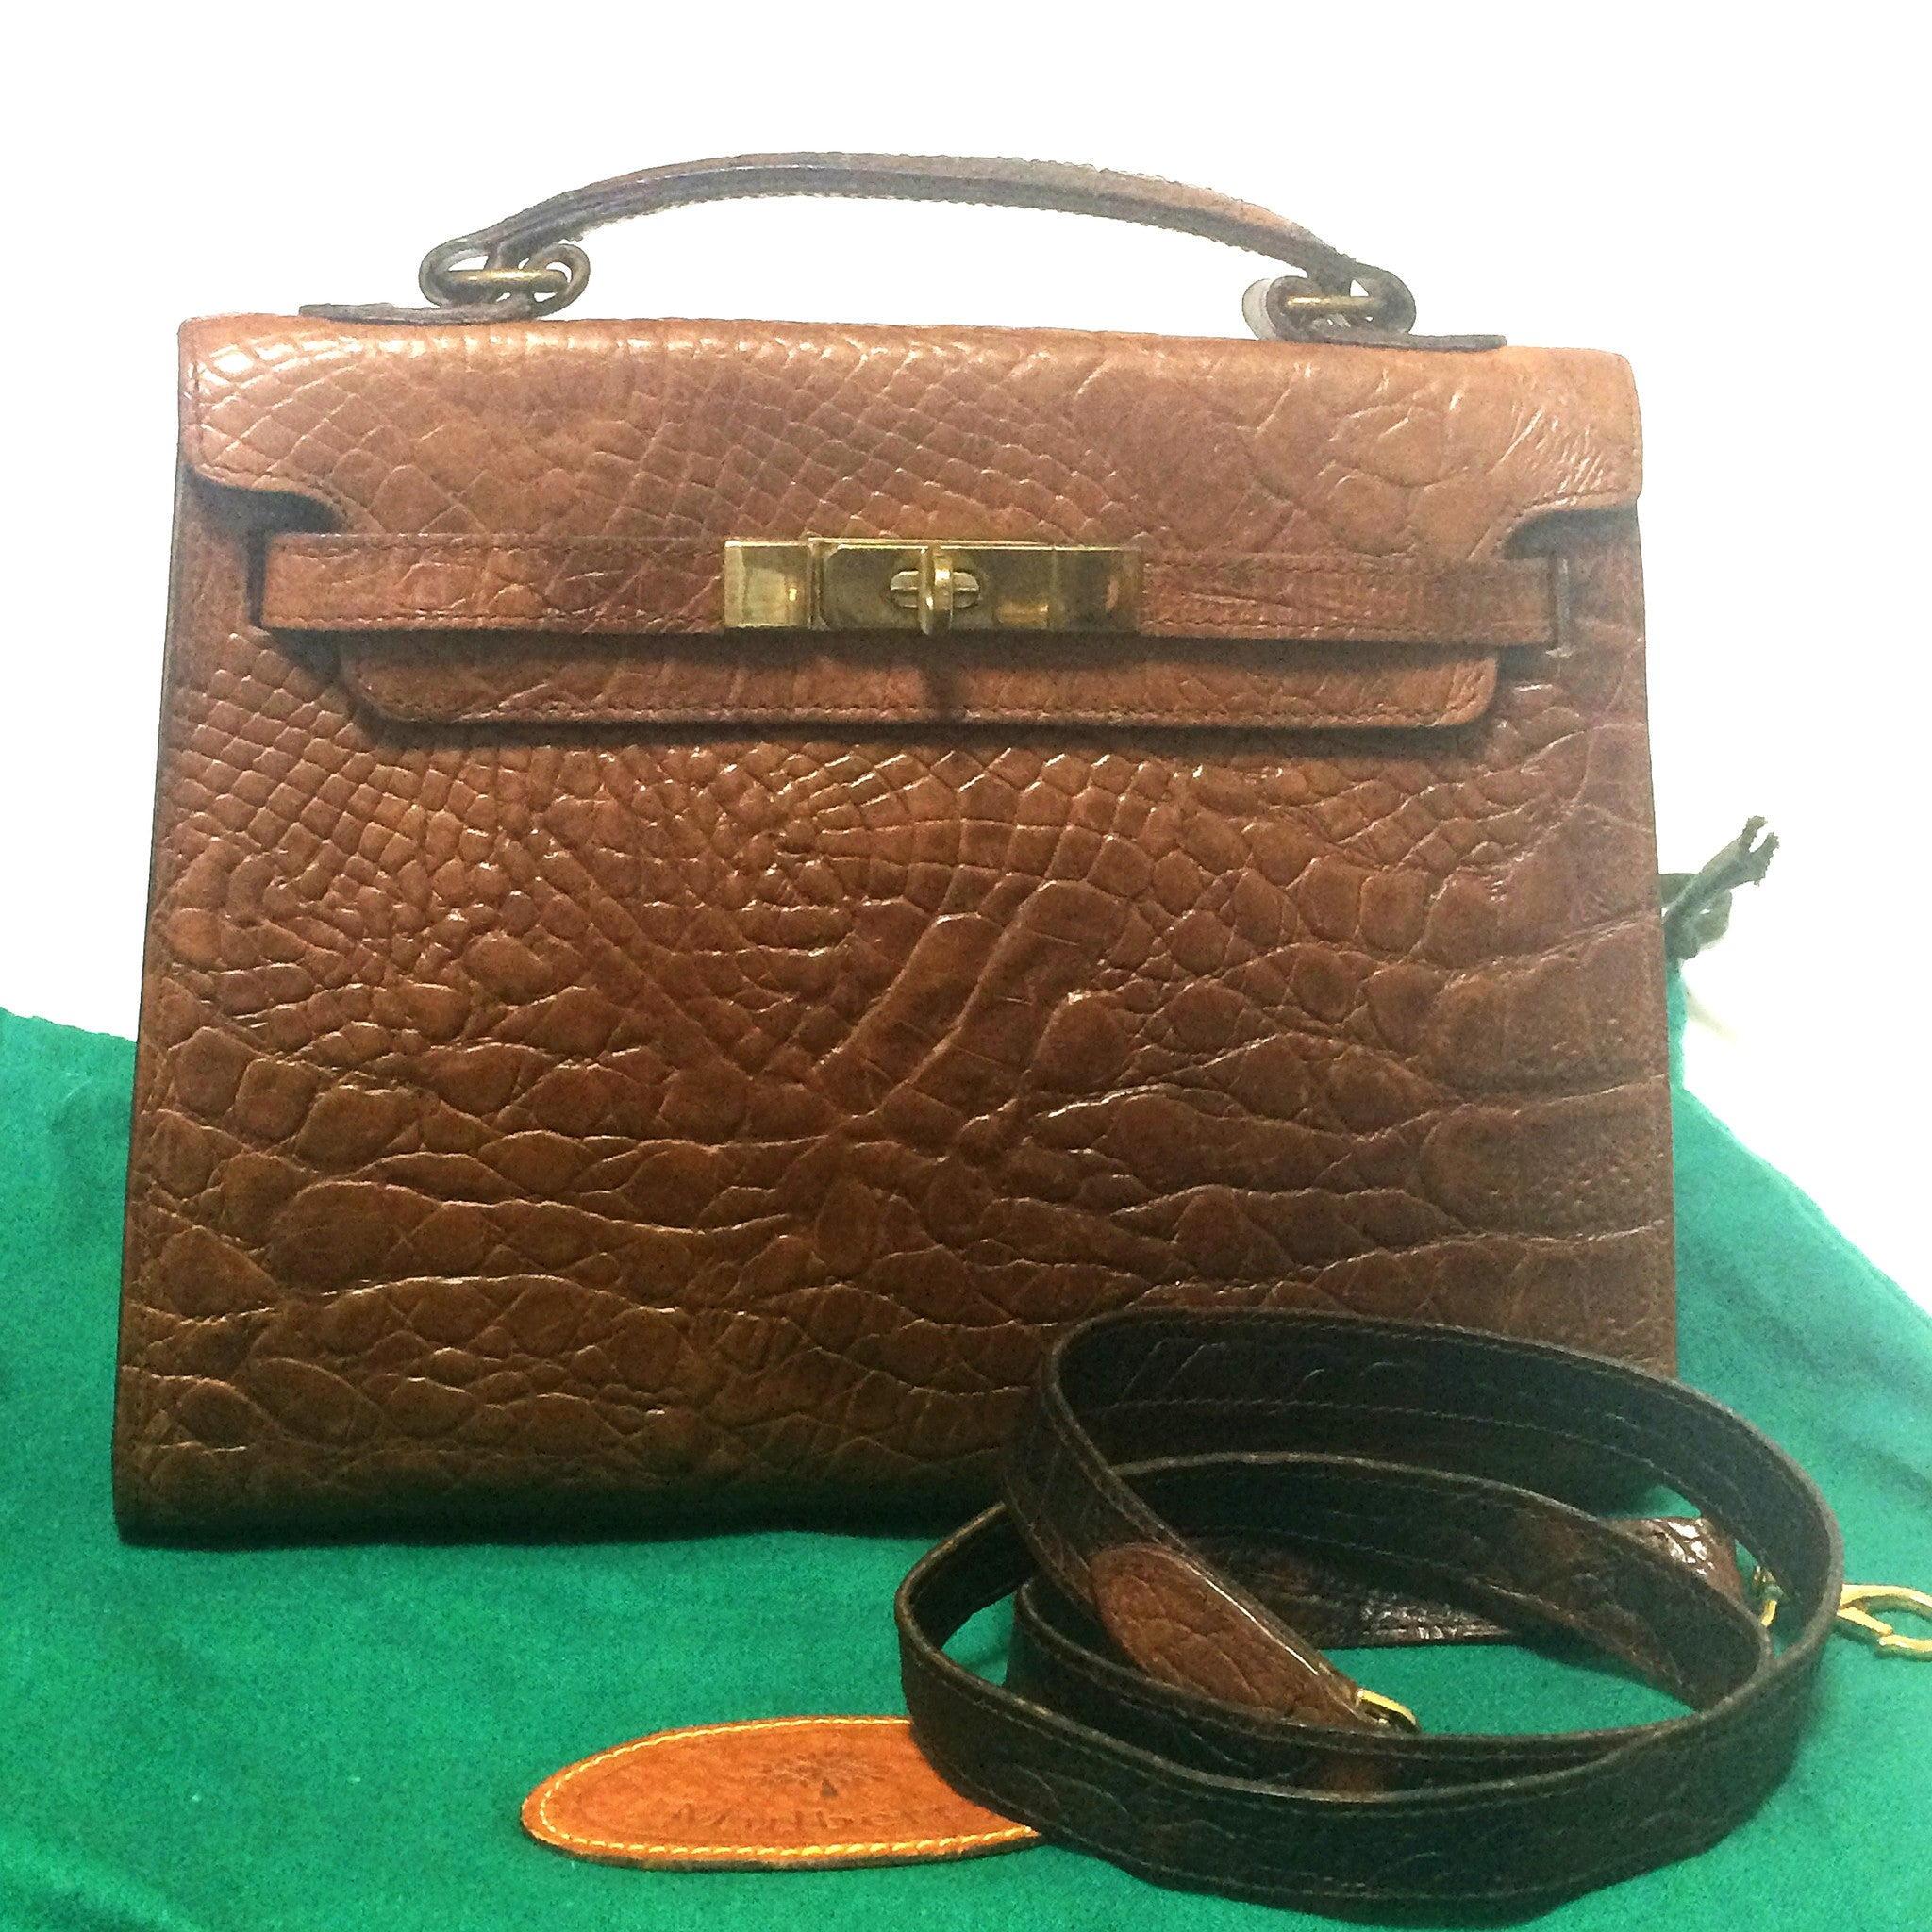 Vintage Mulberry croc embossed brown leather Kelly bag with shoulder strap.  Roger Saul era. a7d7af3646